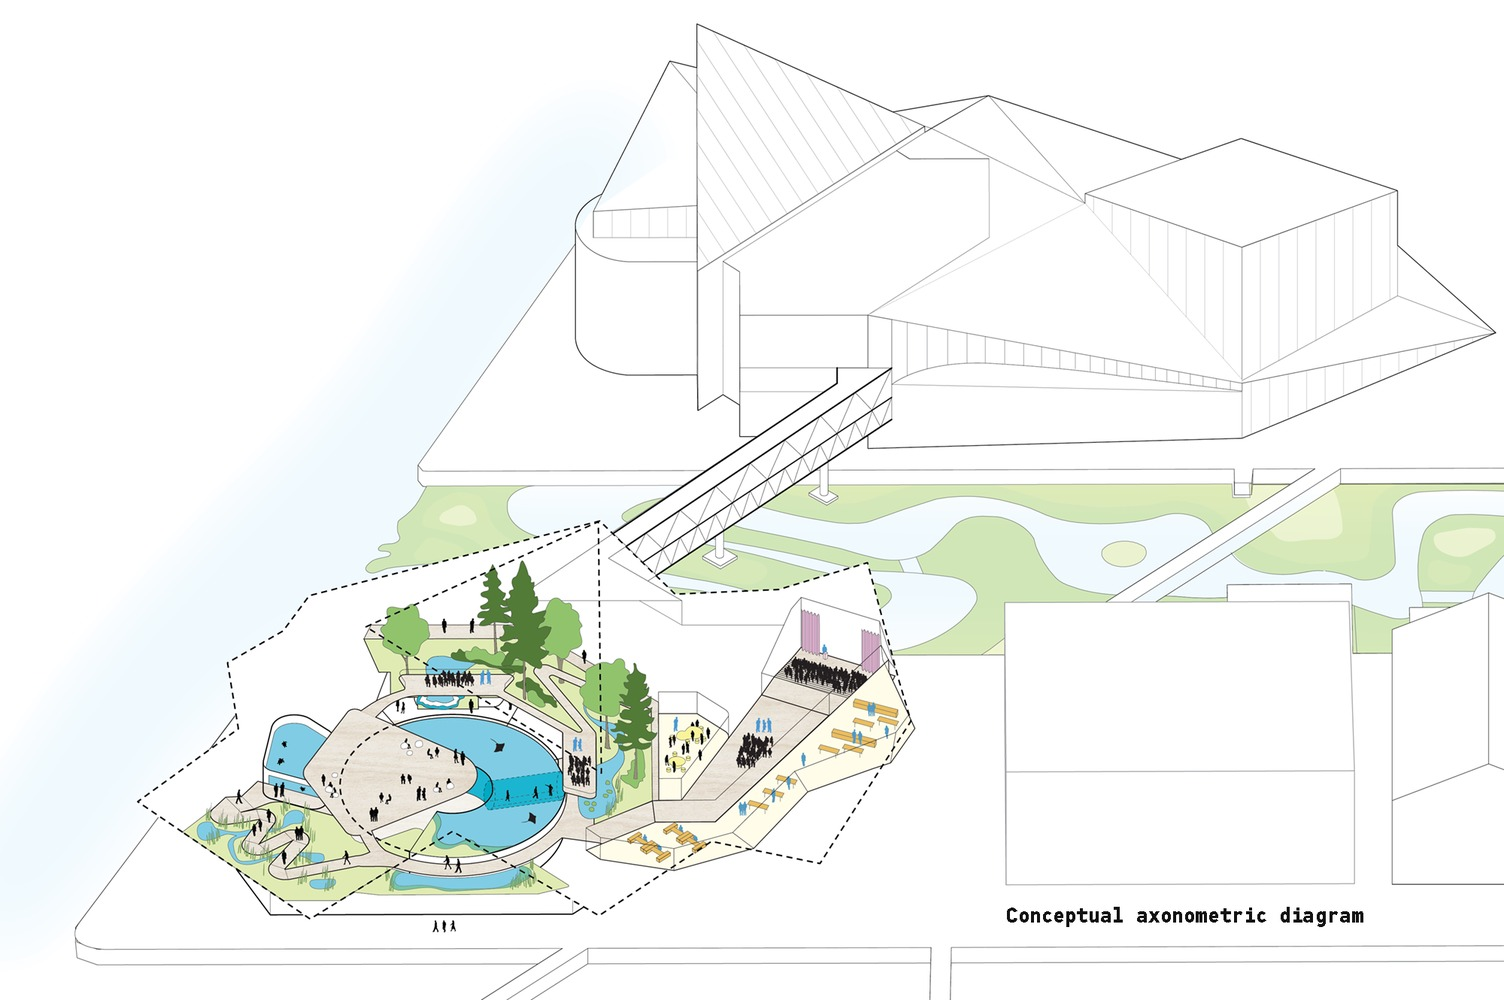 hight resolution of studio gang designs the national aquarium of the future in baltimore